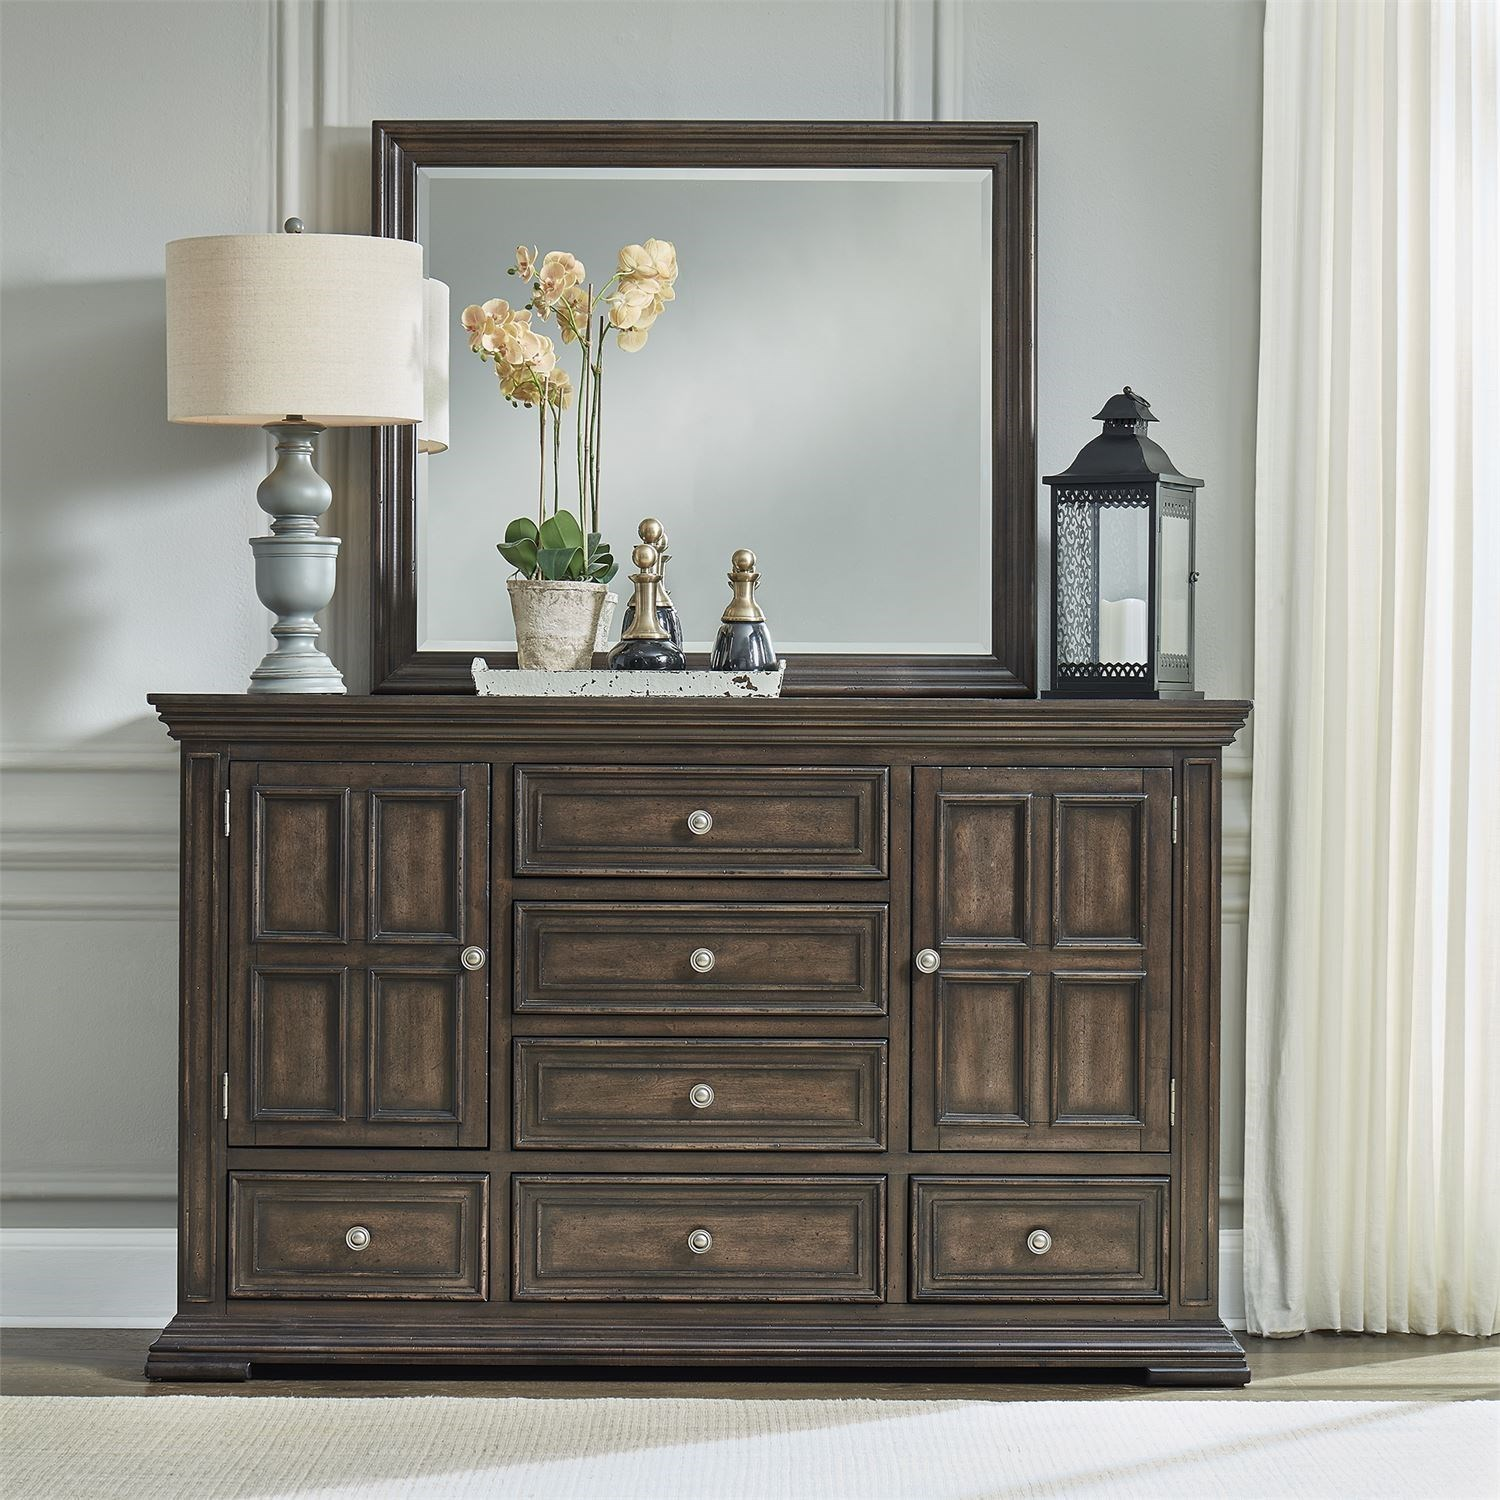 Big Valley Dresser and Mirror by Liberty Furniture at Pilgrim Furniture City